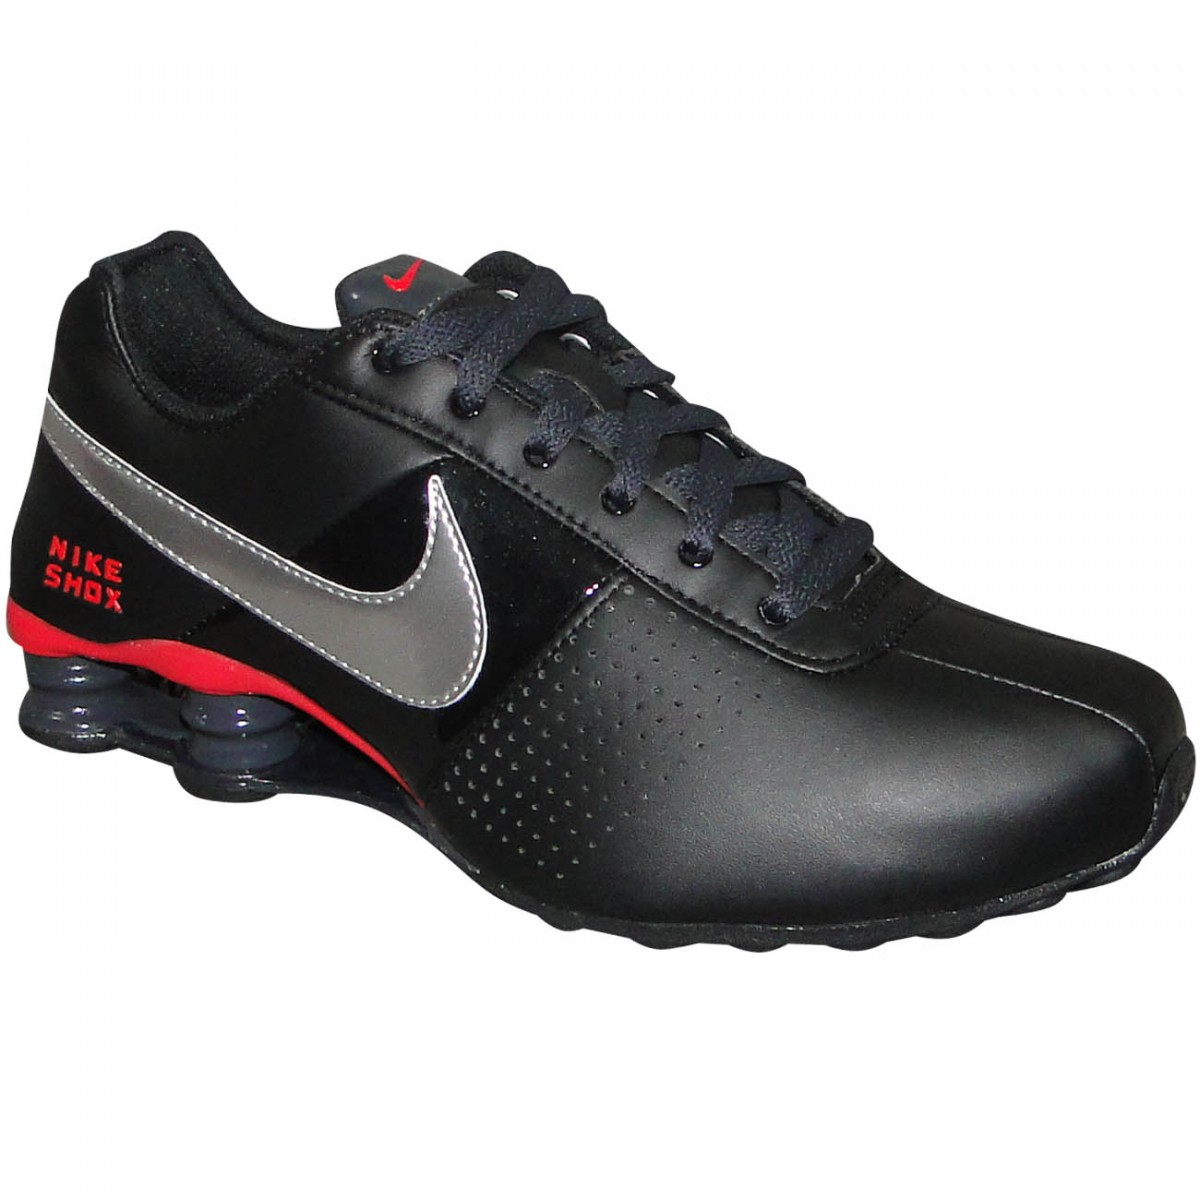 2be1507fb96 Tenis Nike Shox Deliver. ZOOM ...